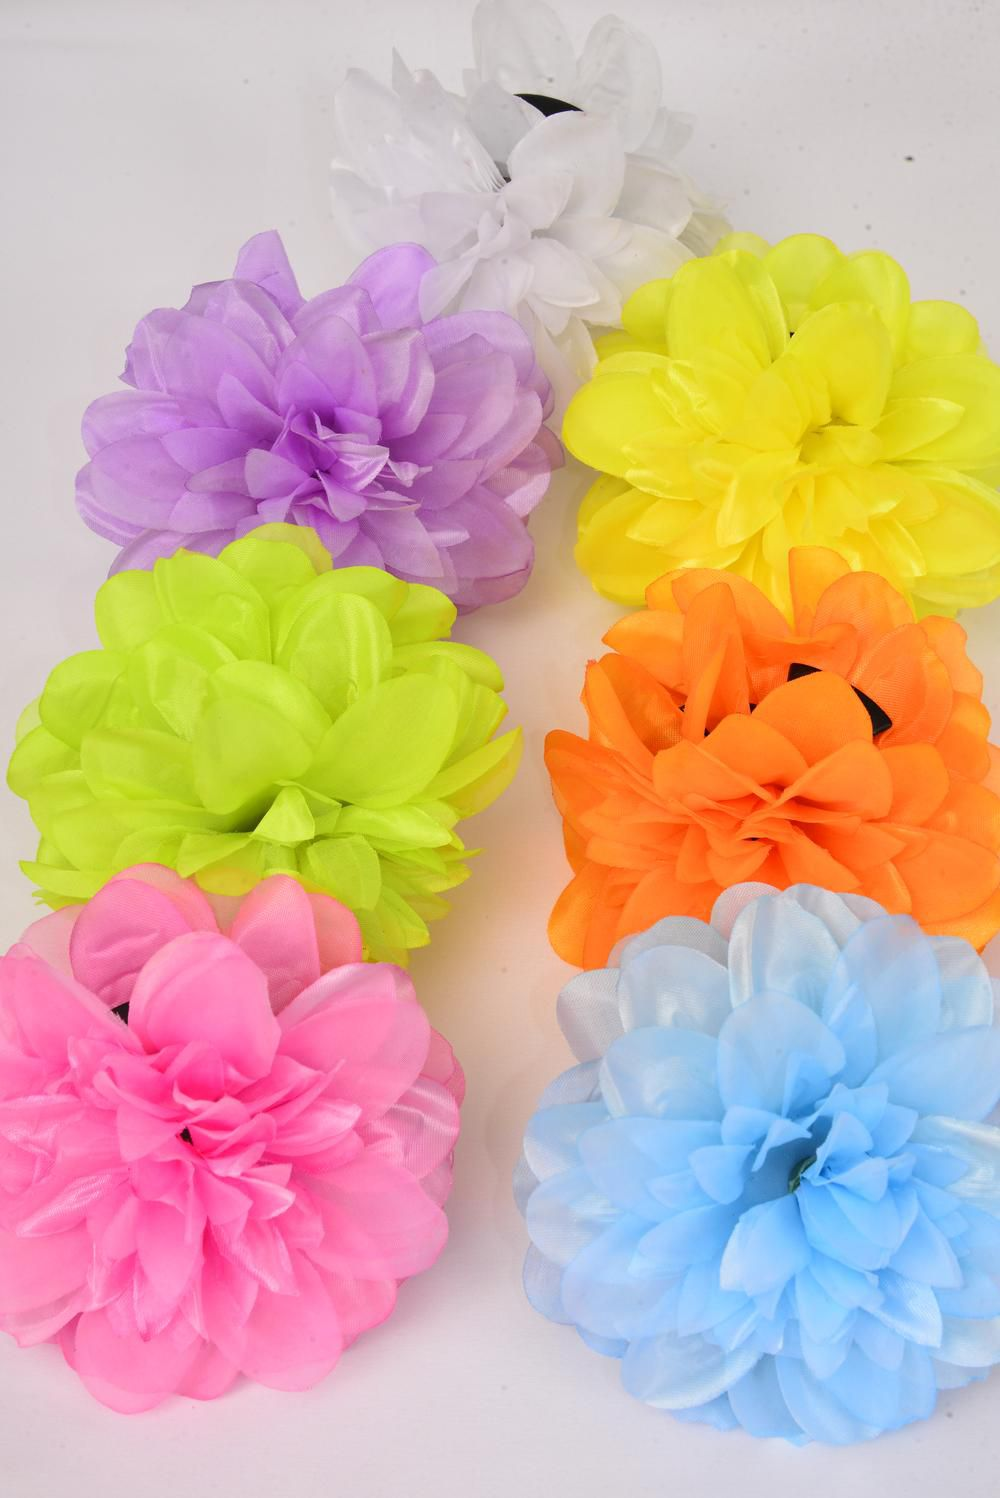 "Jaw Clip Flower Bouquet Caribbean Neon Color Asst/DZ Flower Size-5.5"" Wide,Jaw Clip-3.5"" Wide,2 Pink,2 Purple,2 Orange,2 White,2 Turquoise,1 Yellow,1 Lime,7 Color Asst,Hang Tag & UPC Code,W Clear Box"